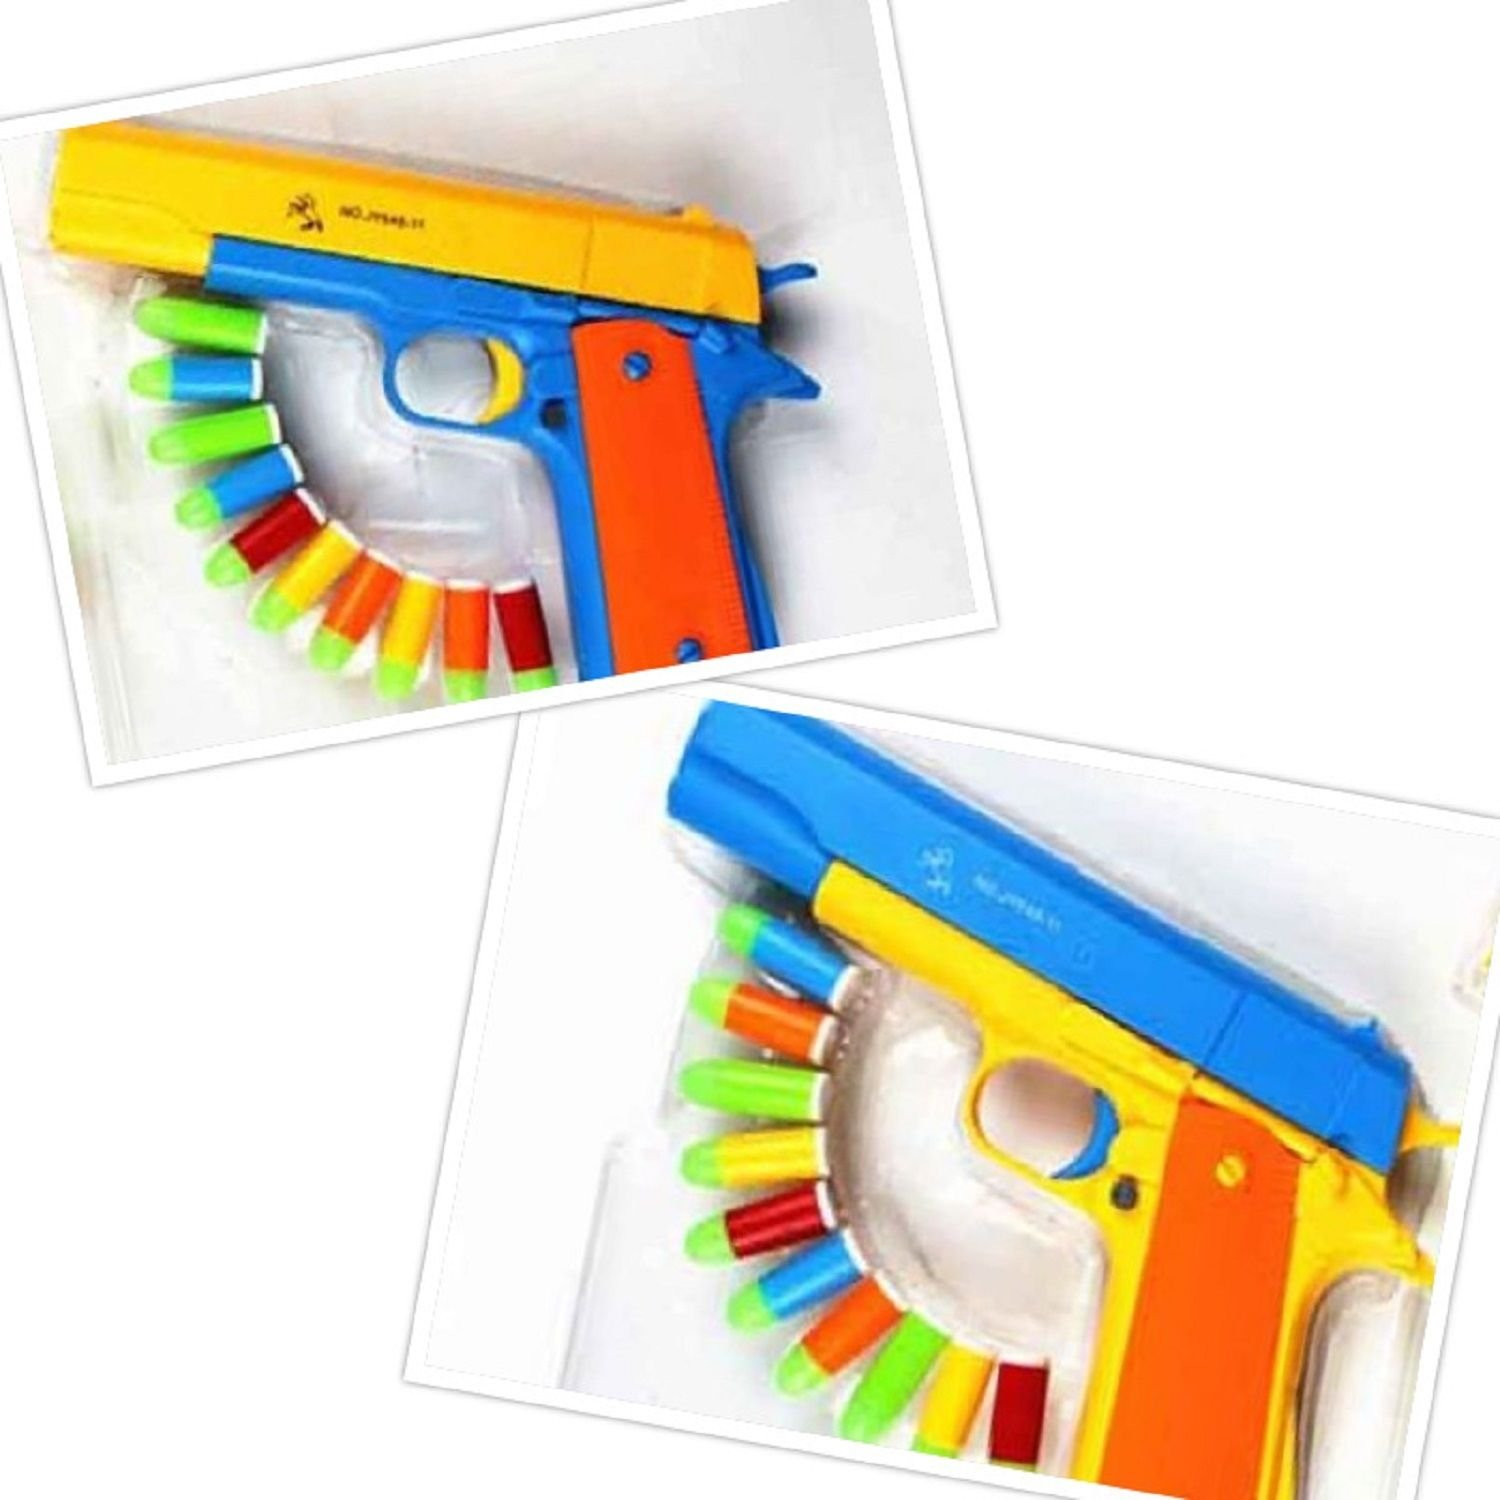 Pistol Classic M1911 Kids Nerf Toy Gun Toy Colorful Darts With Soft Bullets